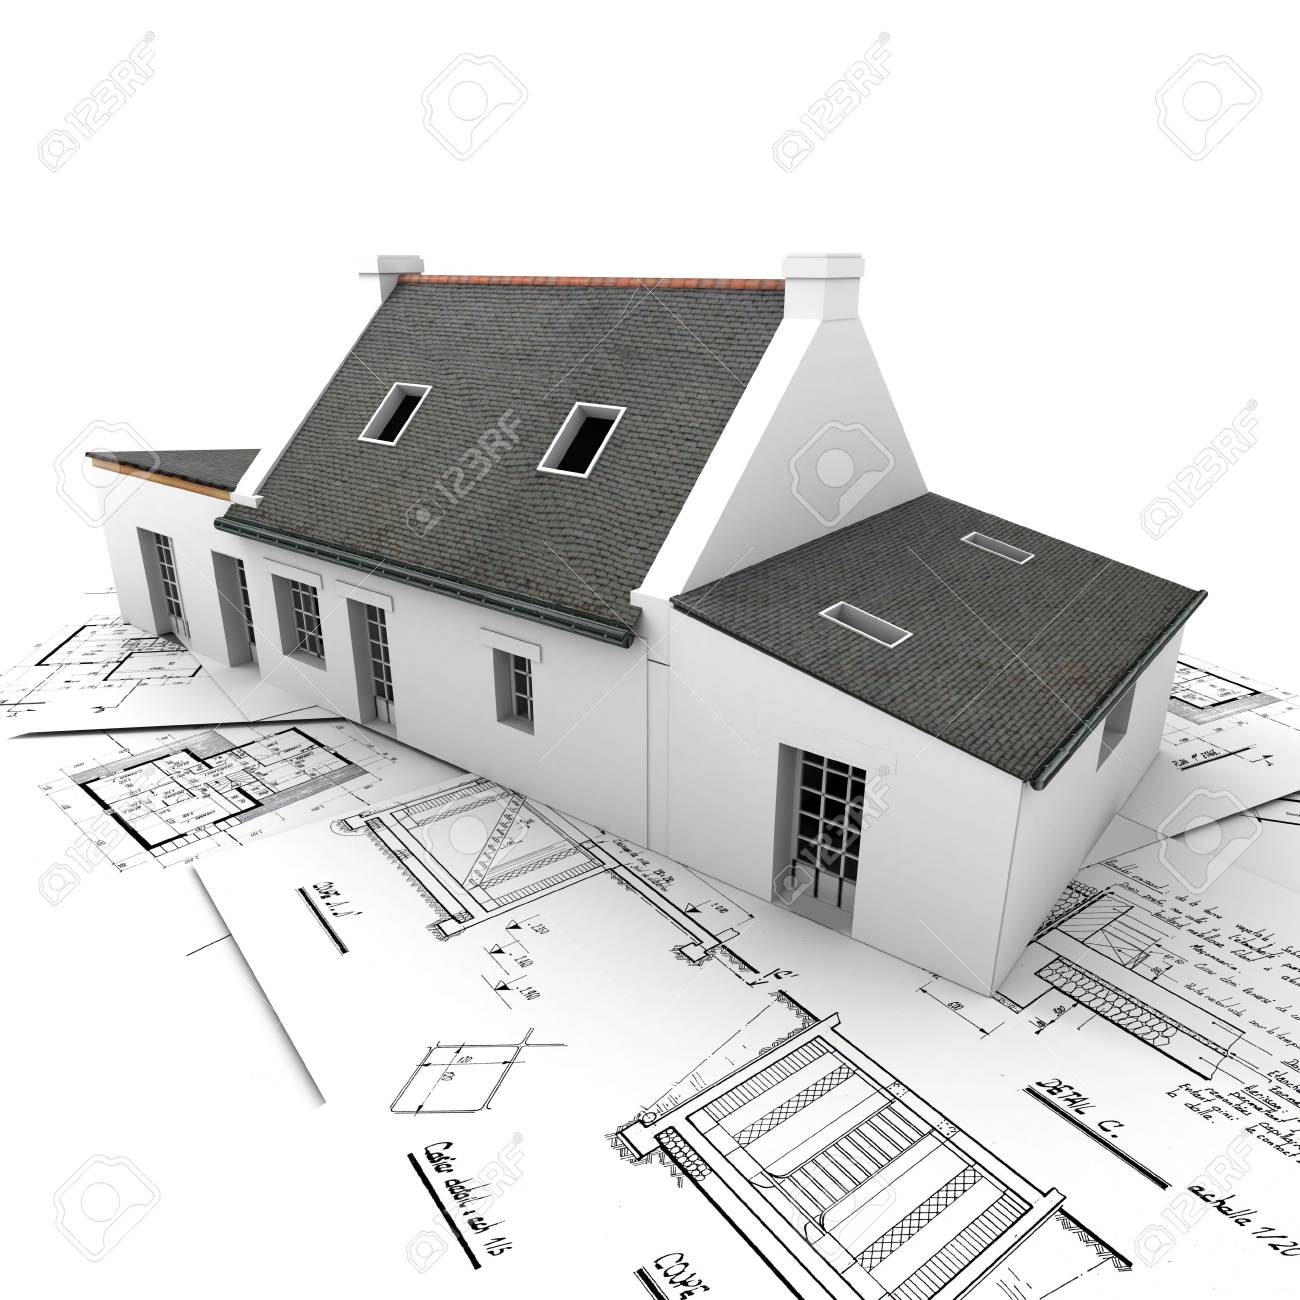 Architecture Blueprints 3d rendering of a house on top of architecture blueprints stock